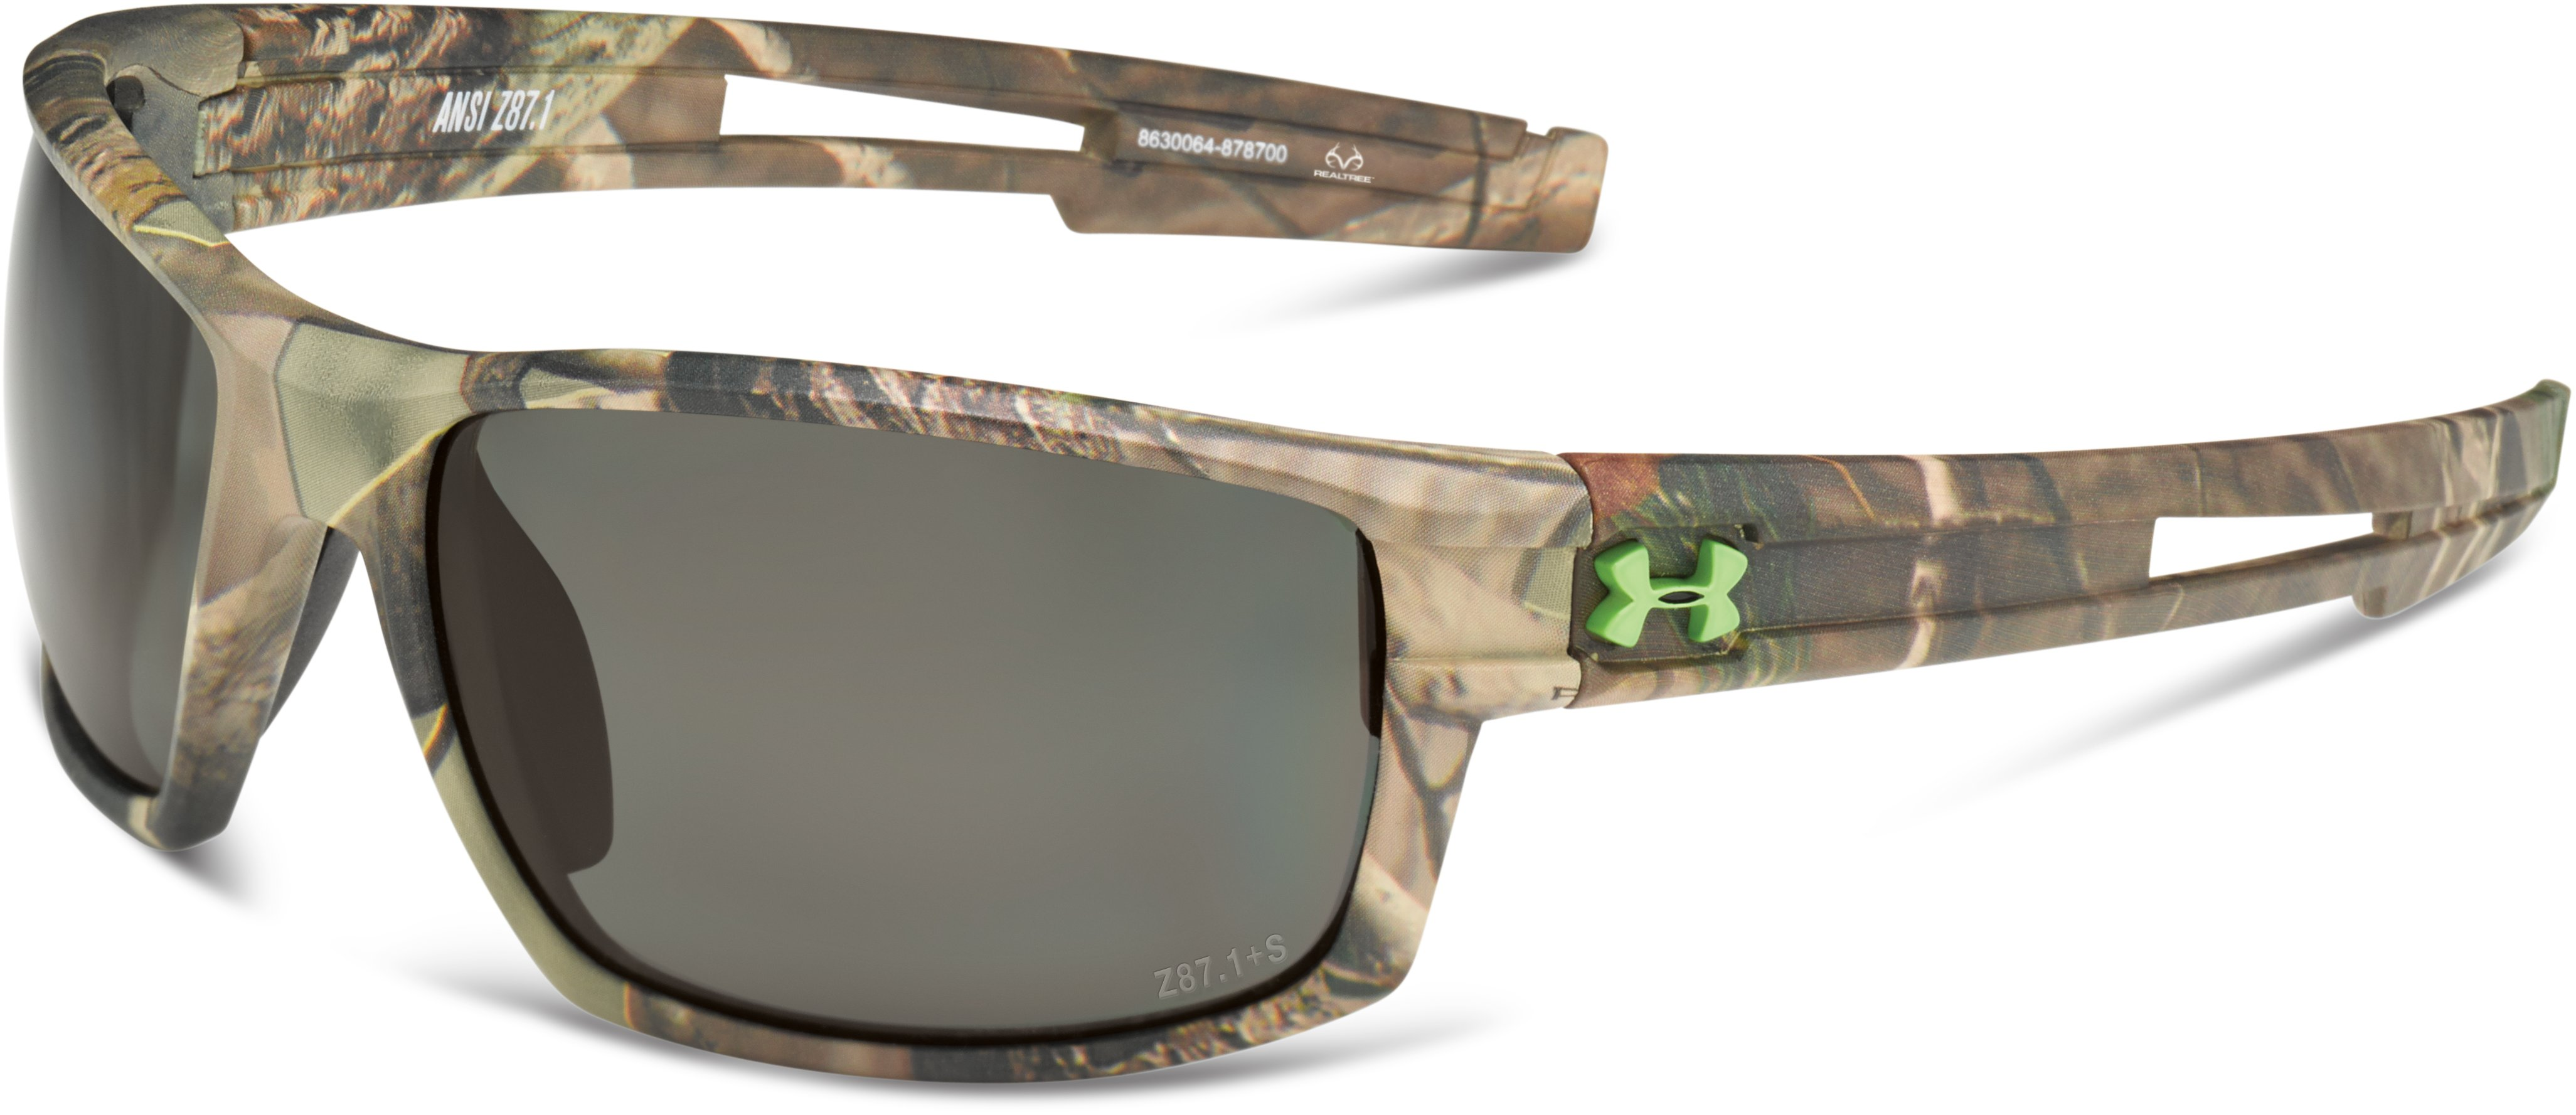 UA Captain Camo Sunglasses, Realtree AP